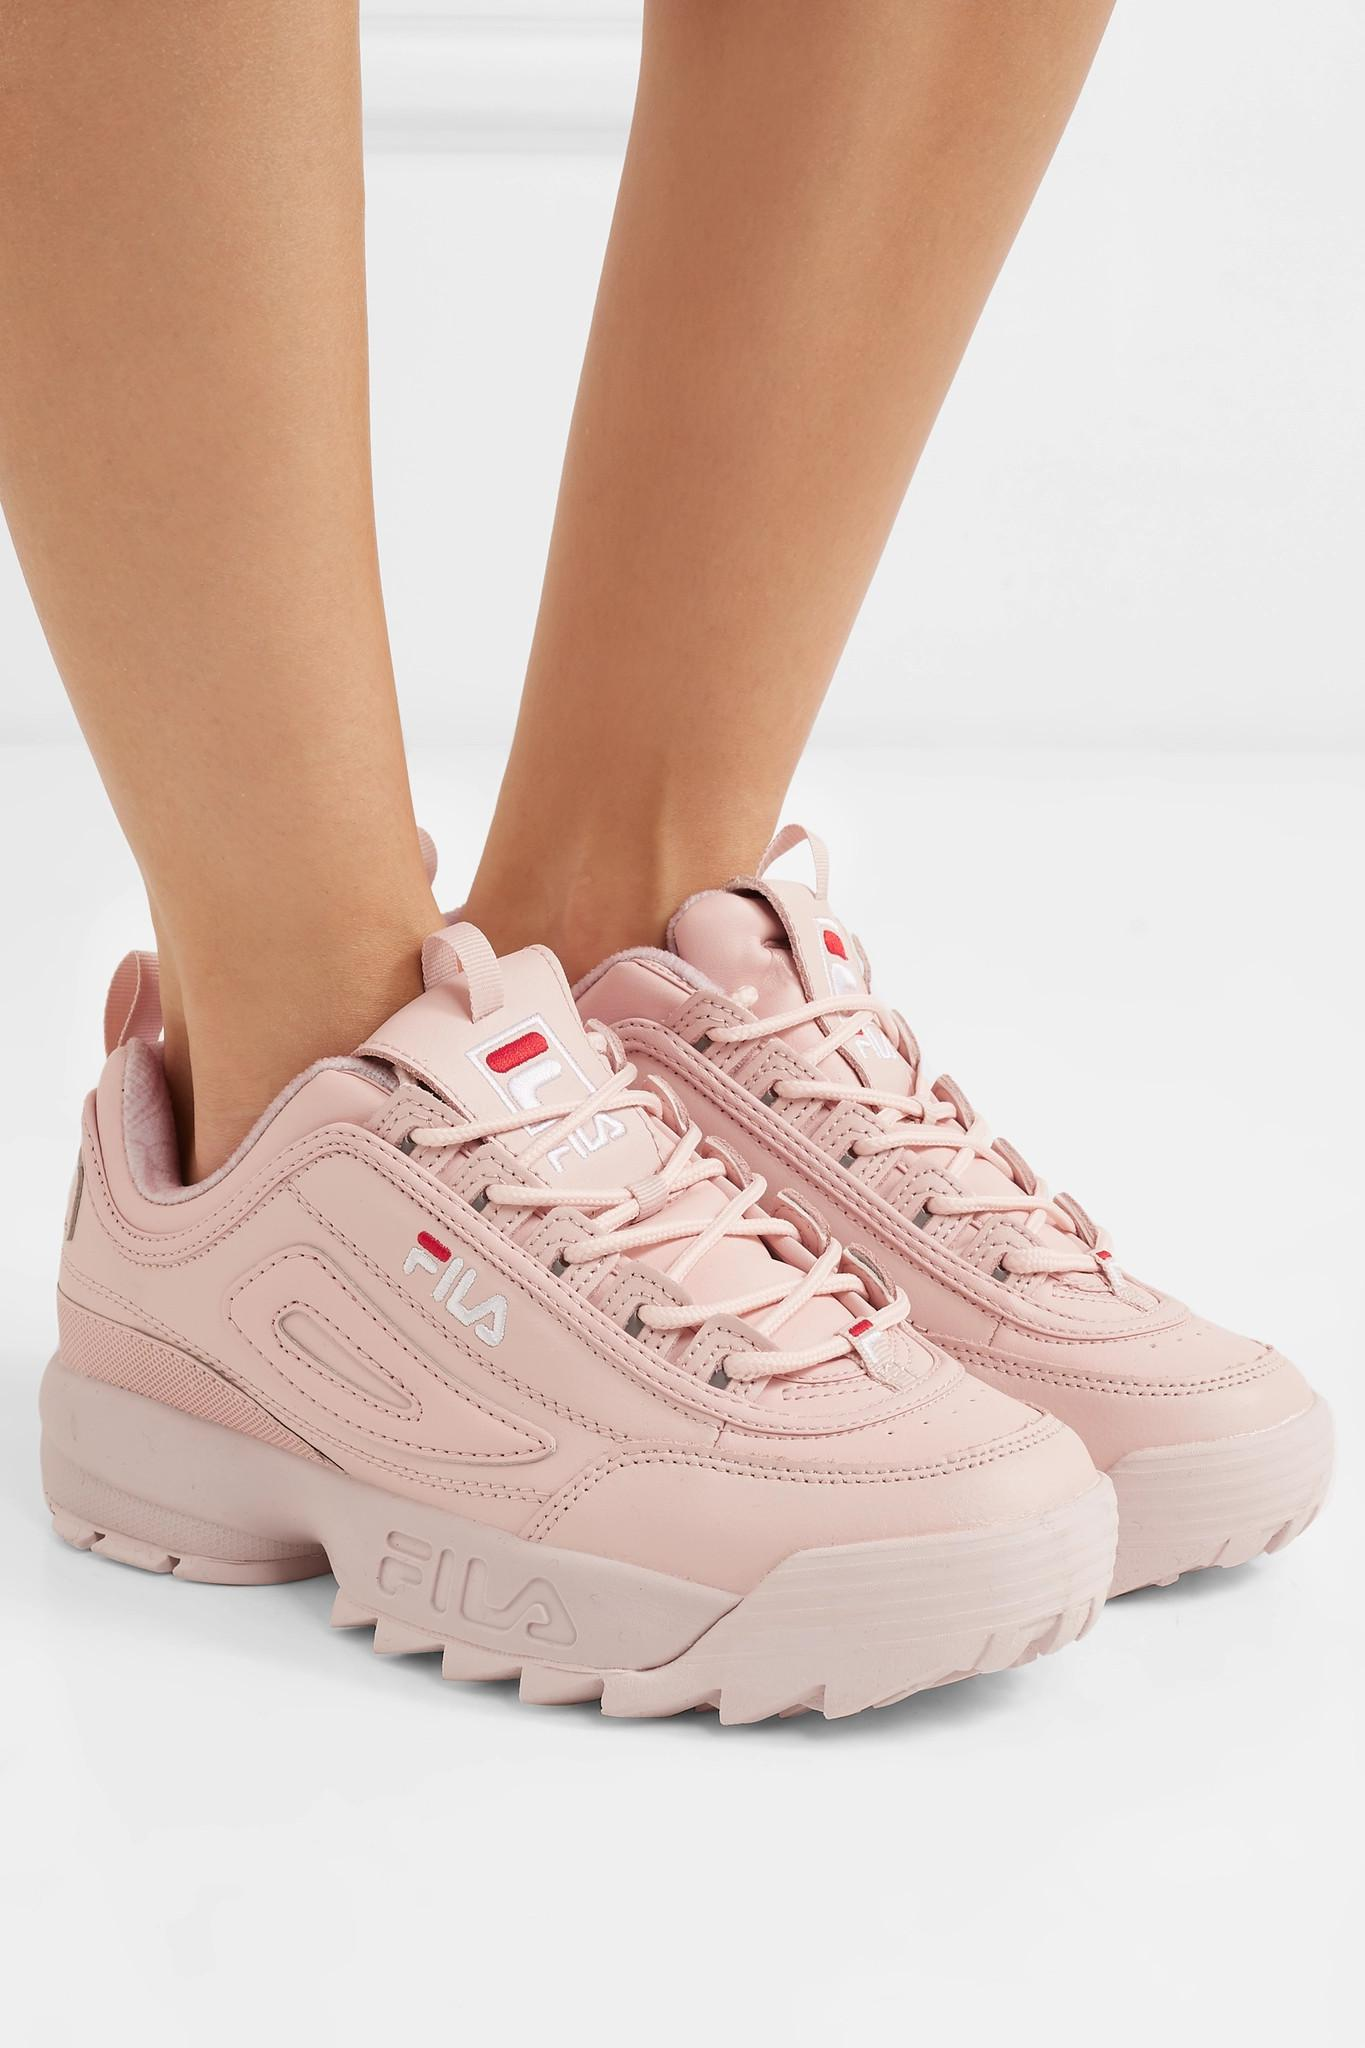 8ca69d25c2fcb Fila Disruptor Ii Premium Logo-embroidered Leather Sneakers in Pink ...